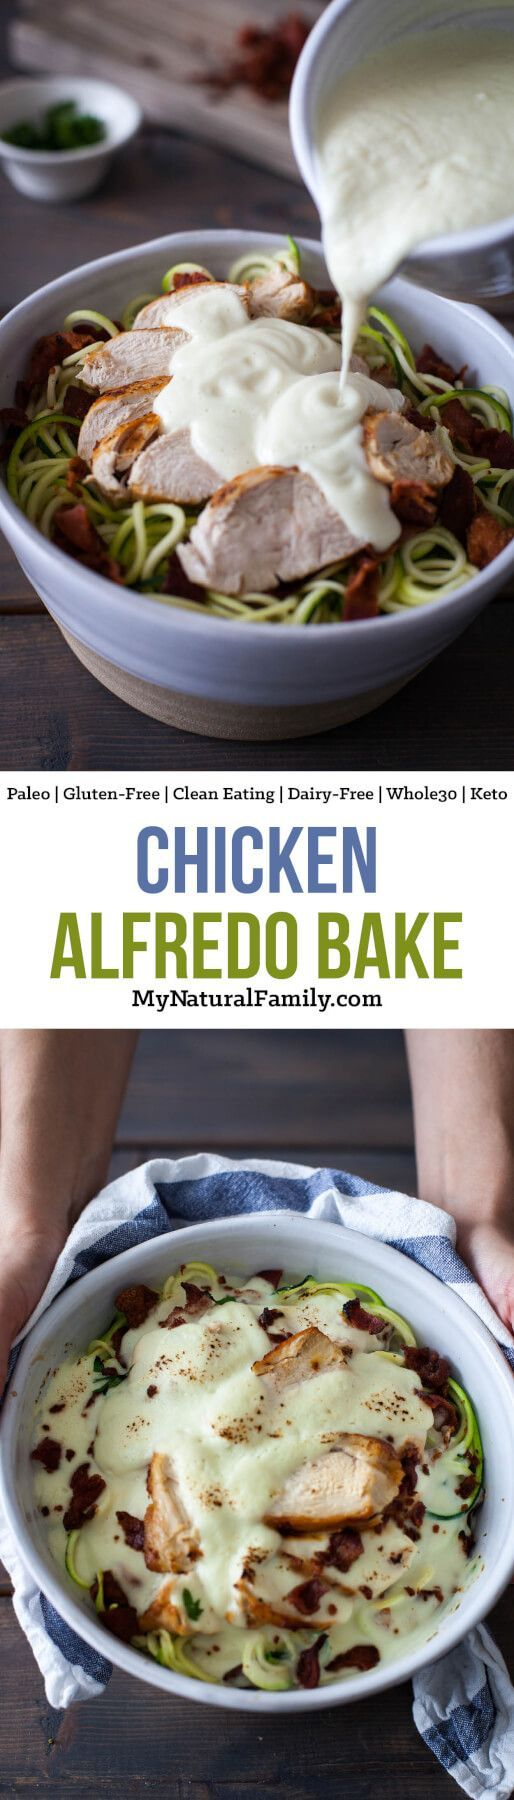 Chicken Alfredo Bake Recipe {Paleo, Clean Eating, Gluten-Free, Dairy-Free, Whole30, Keto} - This cauliflower Alfredo sauce is so good and it really helps to pull together the chicken, bacon and zoodles. So simple and so good!